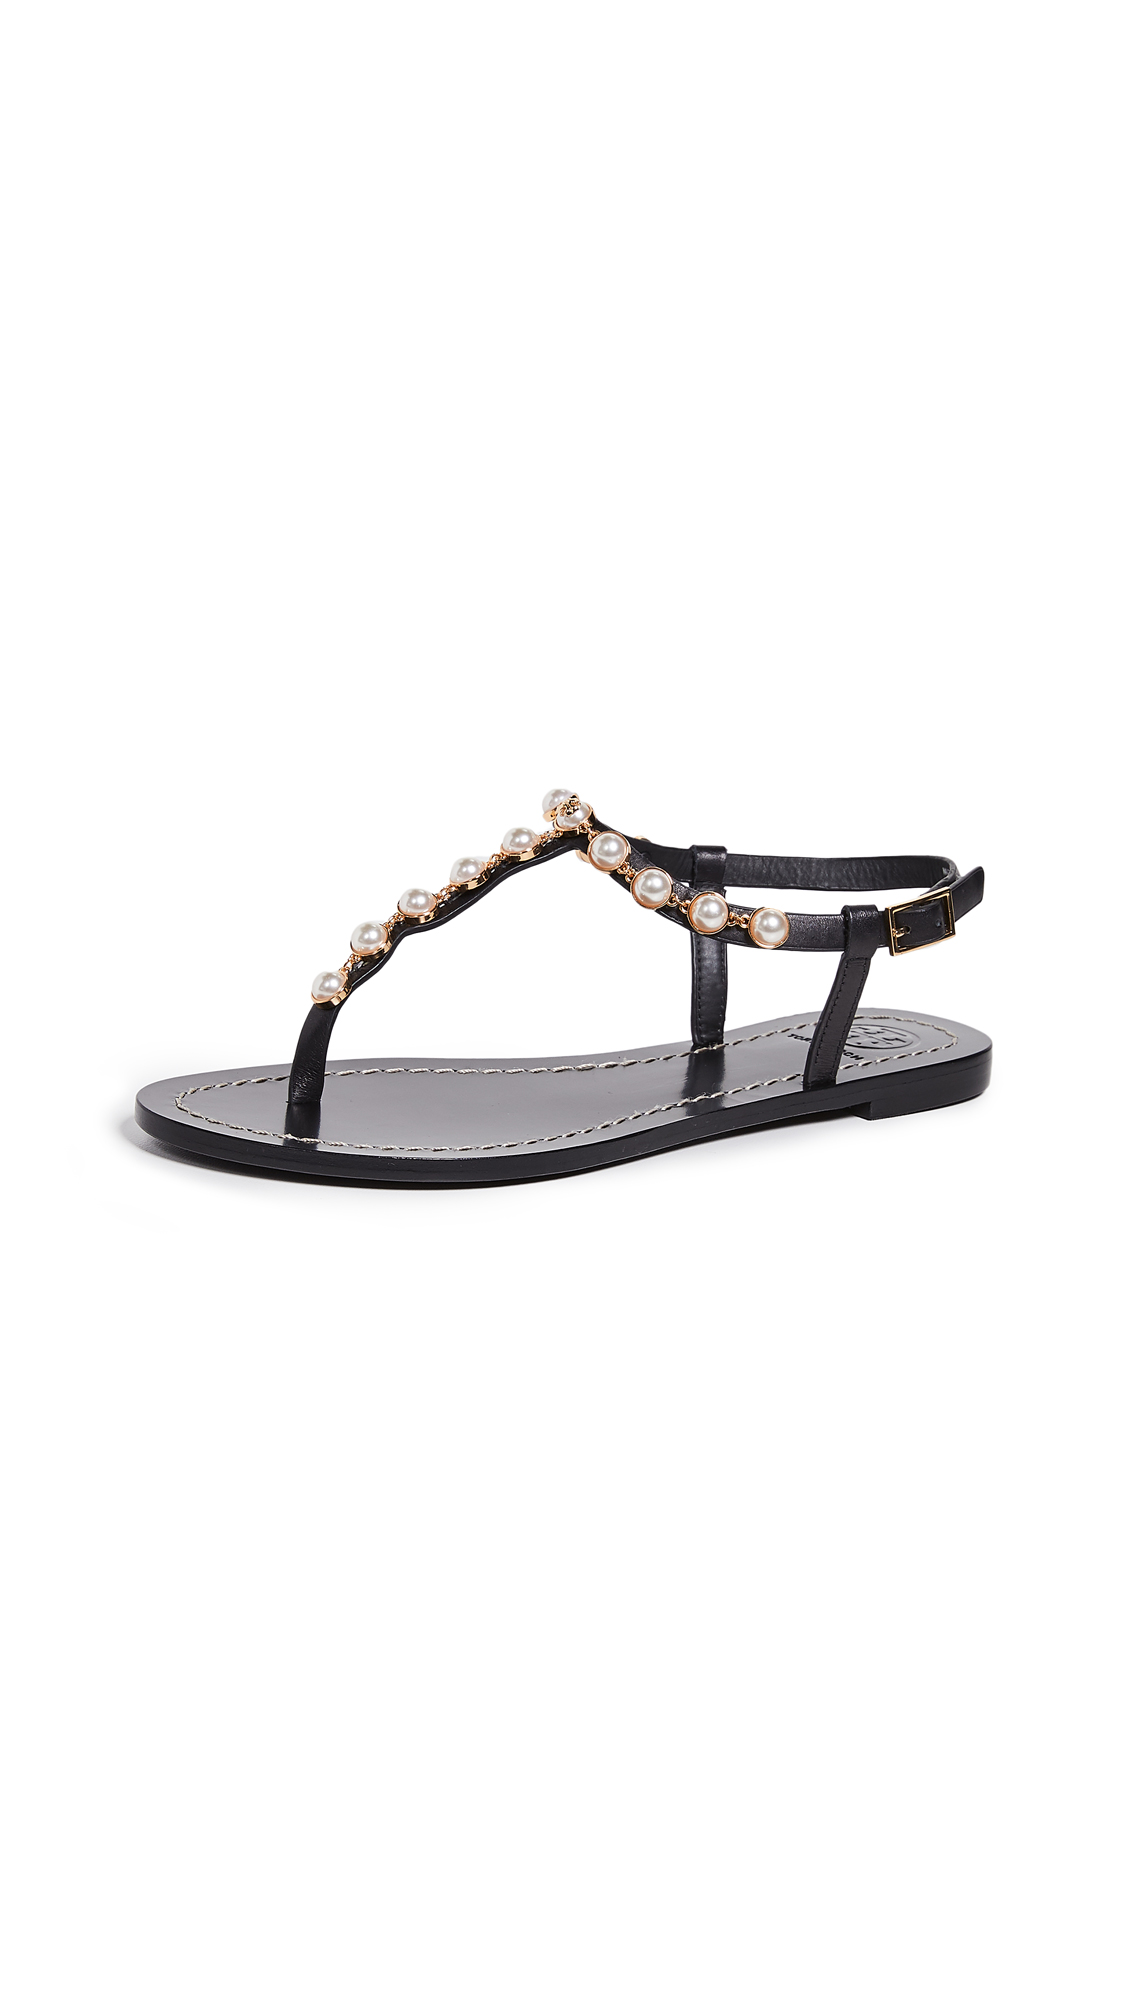 336a78410e5 Tory Burch Emmy Embellished T-Strap Sandal In Perfect Black